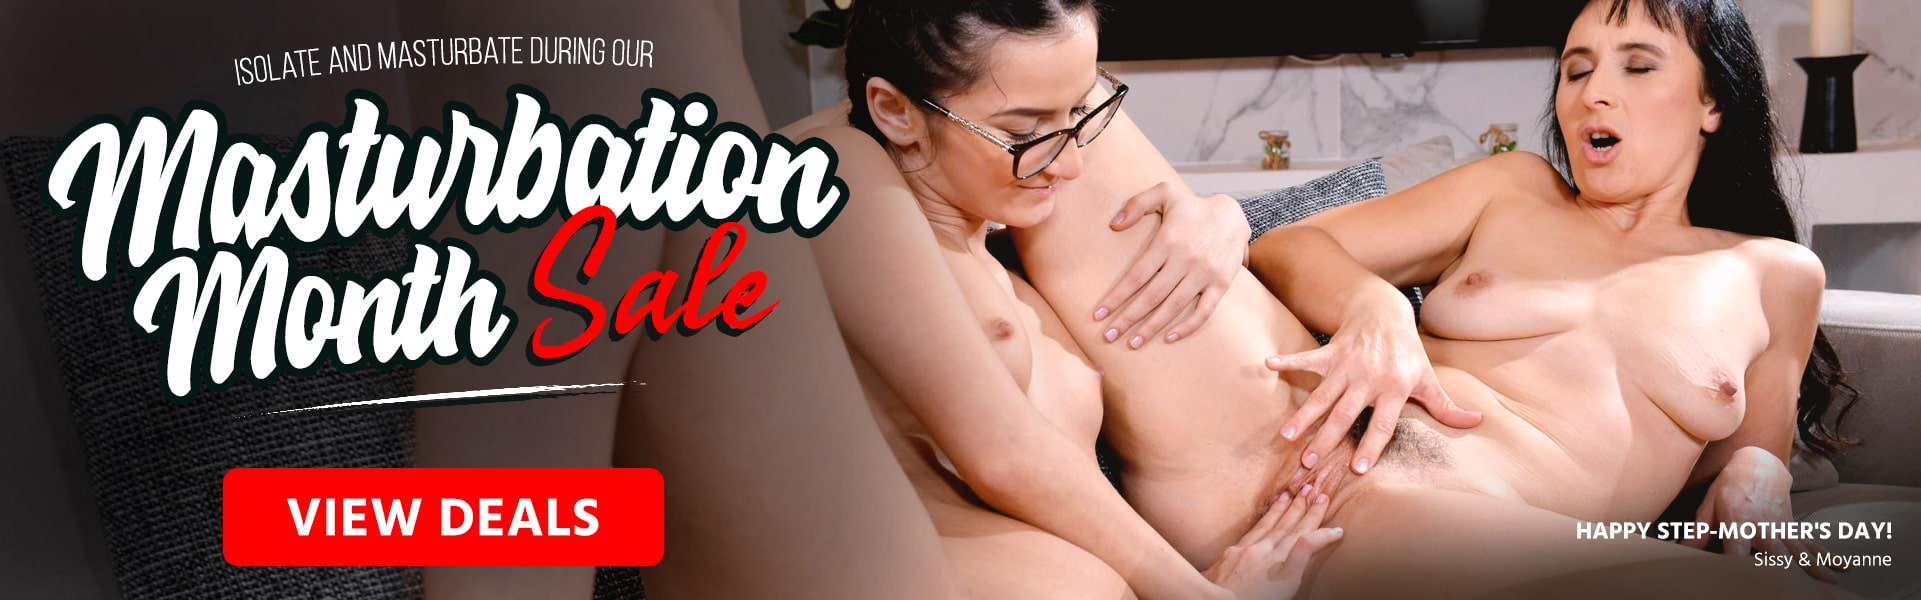 21Sextreme, Masturbation Month Sale